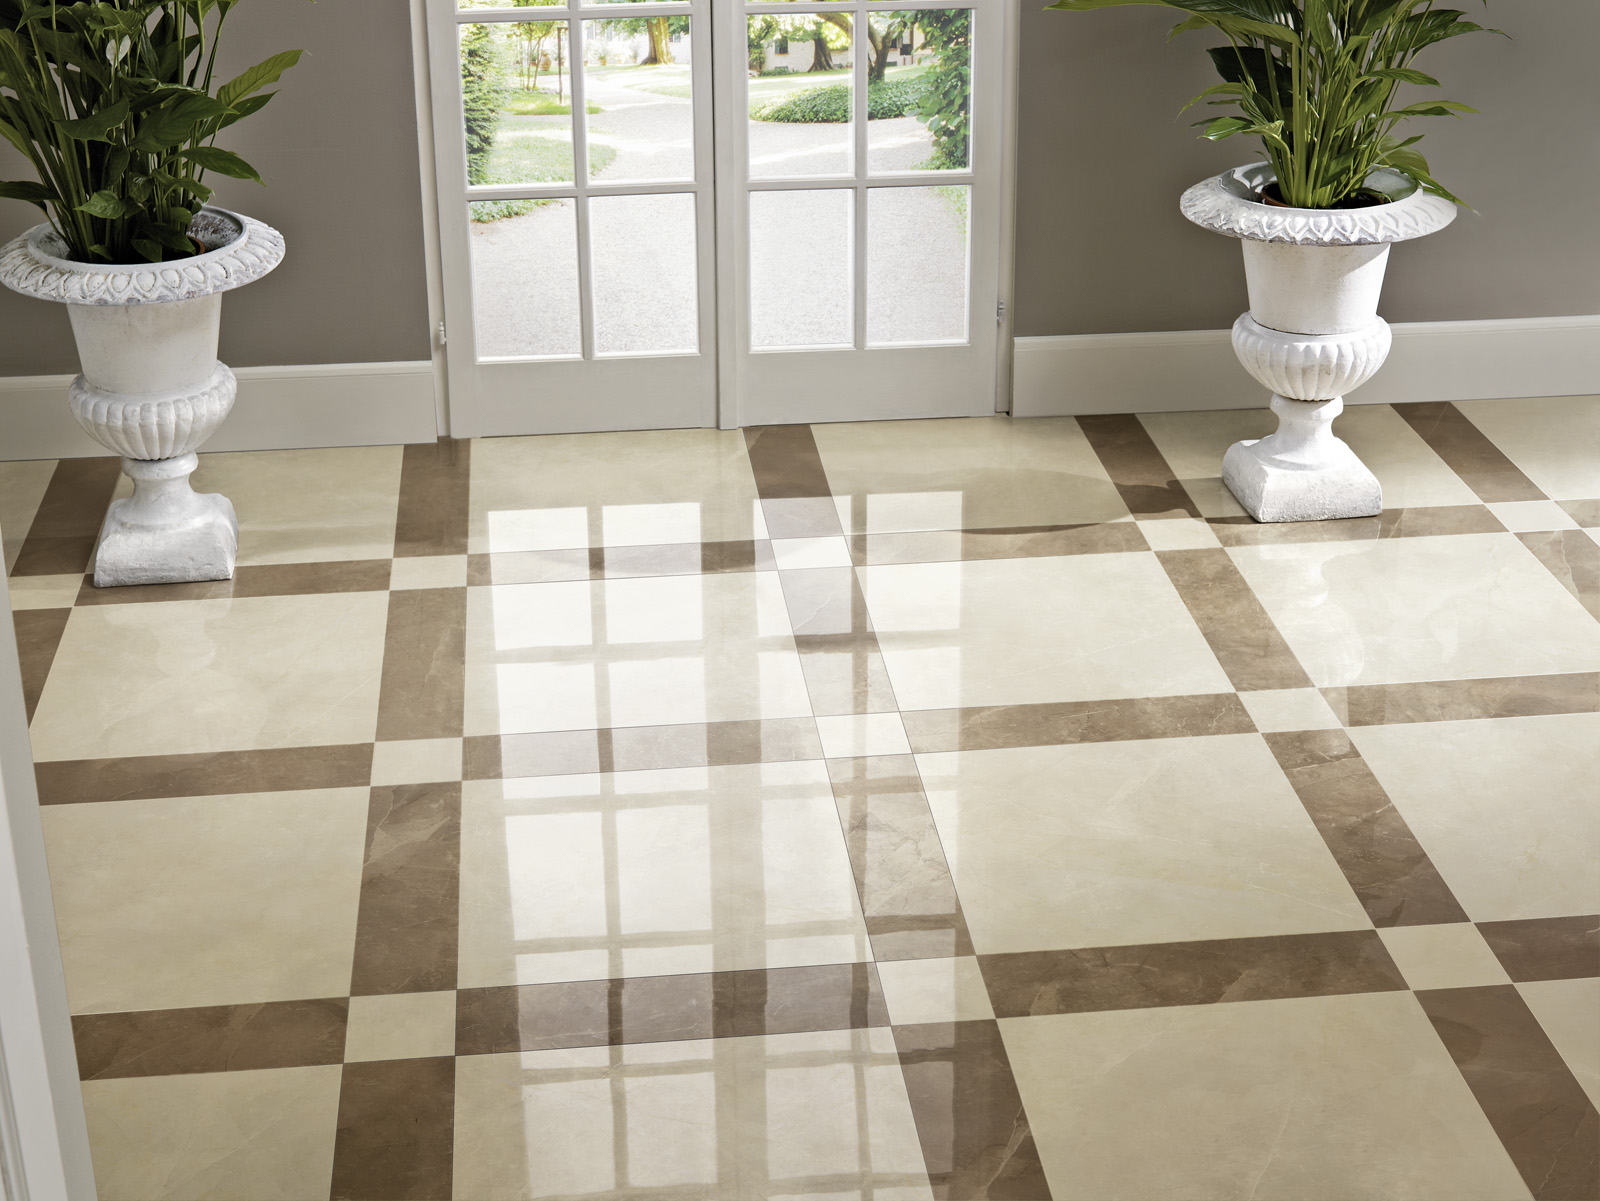 Carrelage imitation marbre voir les collections marazzi for Image de carrelage